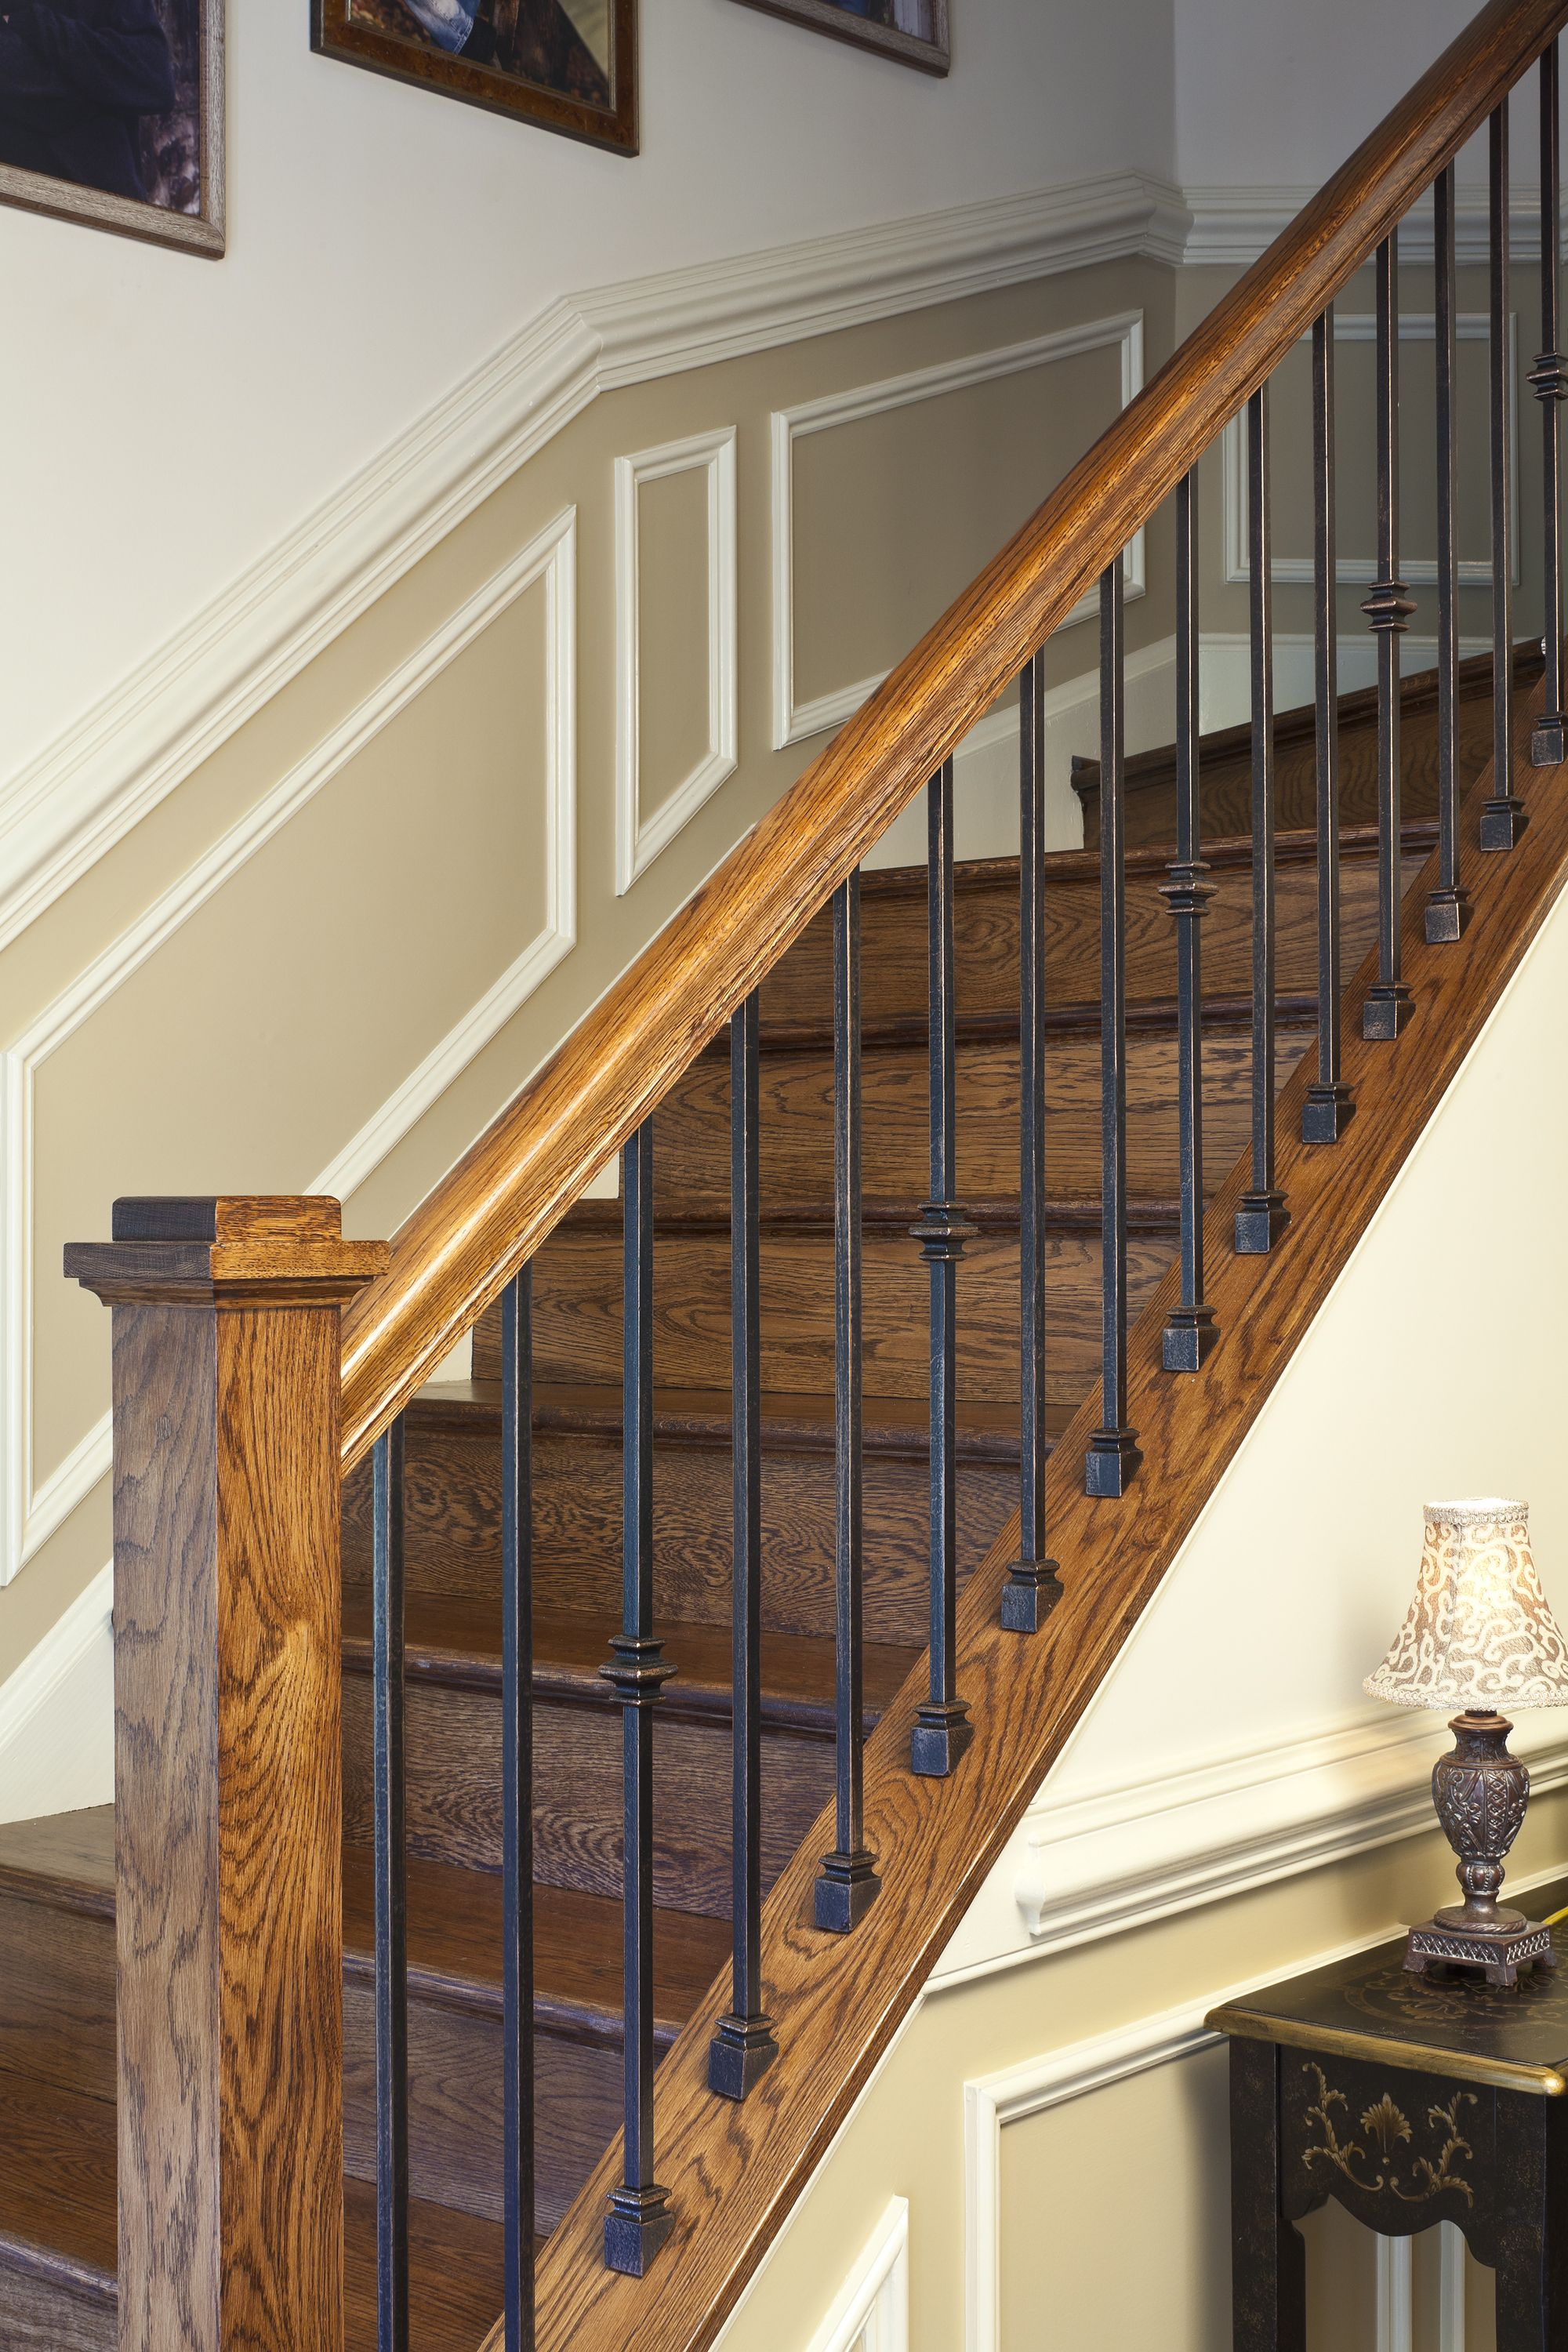 Custom Fabricated Wrought Iron Spindles With Stained Rail Post | Wrought Iron Stair Railing Near Me | Steel | Spindles | Wood | Front Porch Railings | Stair Spindles